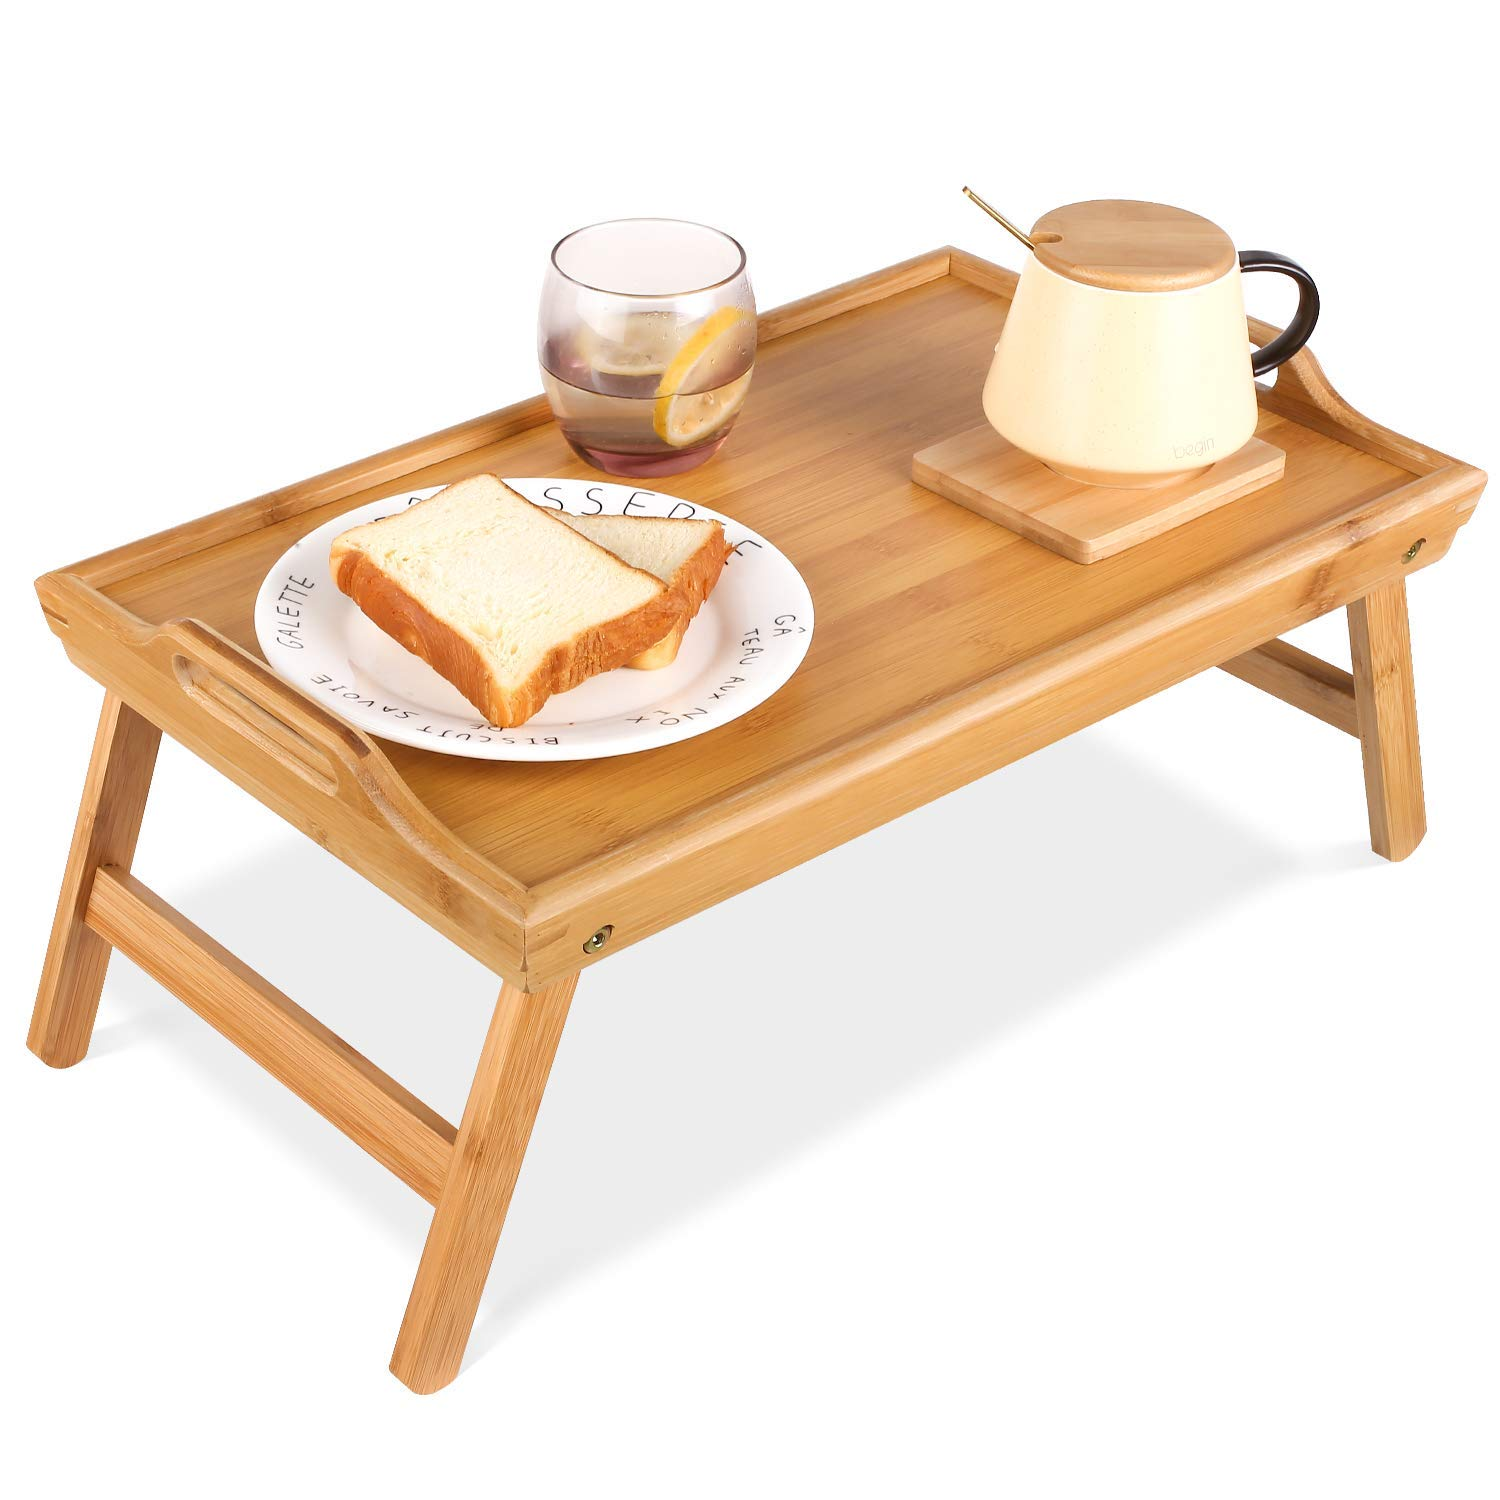 Natural Bamboo Serving Tray Set Bed Tray Breakfast Table With Legs Bamboo Tray Serving